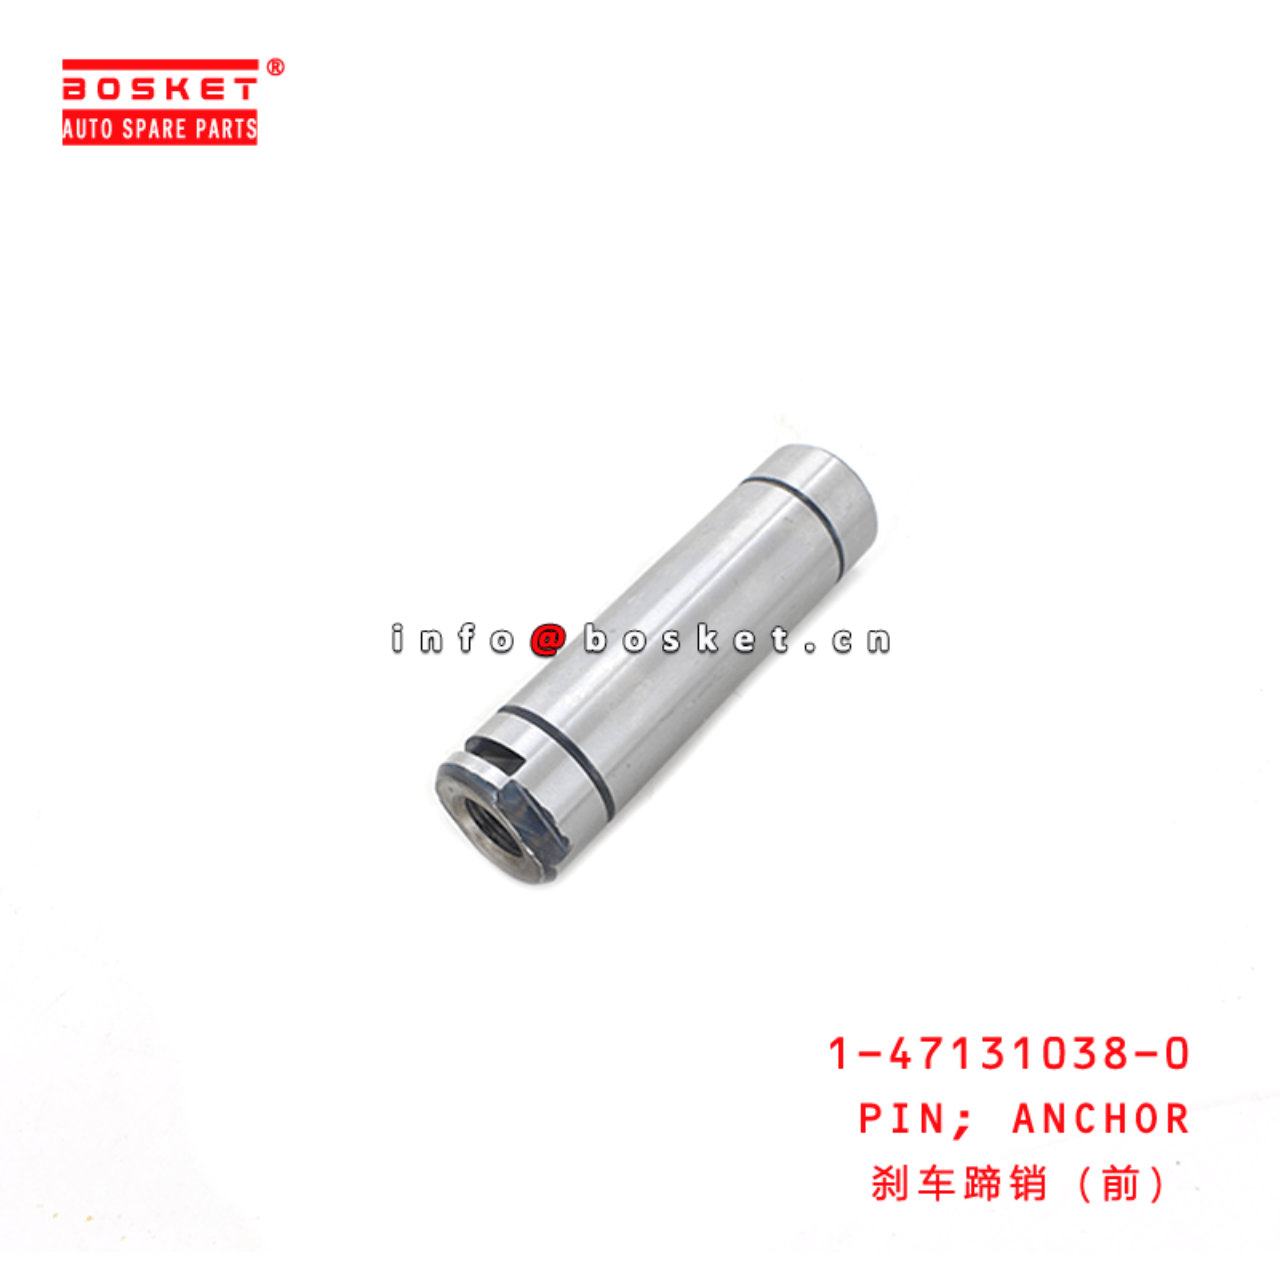 1-47131038-0 Anchor Pin 1471310380 Suitable for IS...